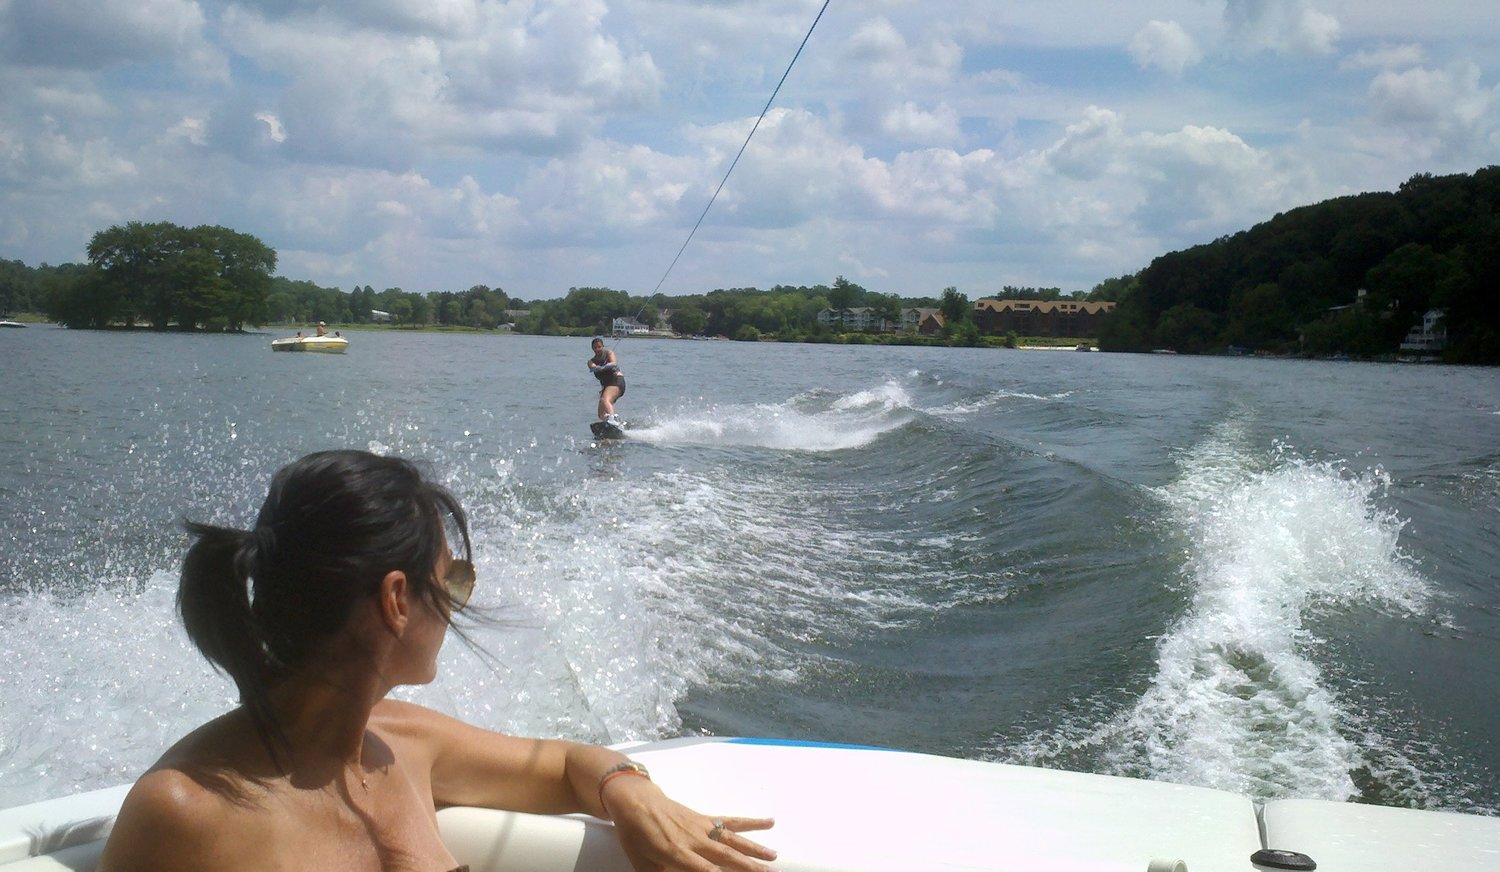 Anouk Govil – Watersports To Try in Connecticut